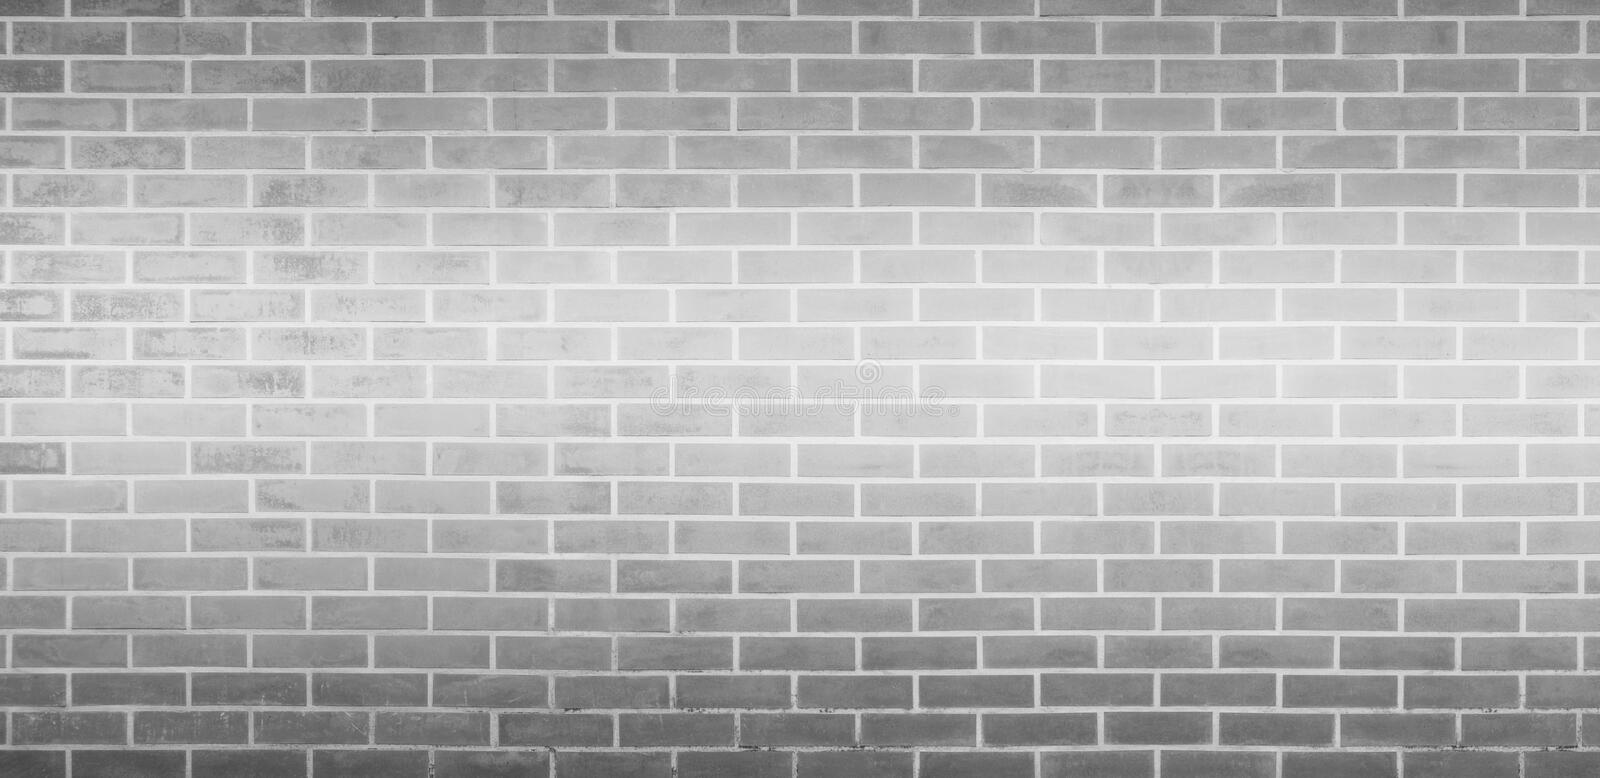 Brick wall, Gray white bricks wall texture background for graphic design royalty free stock photography